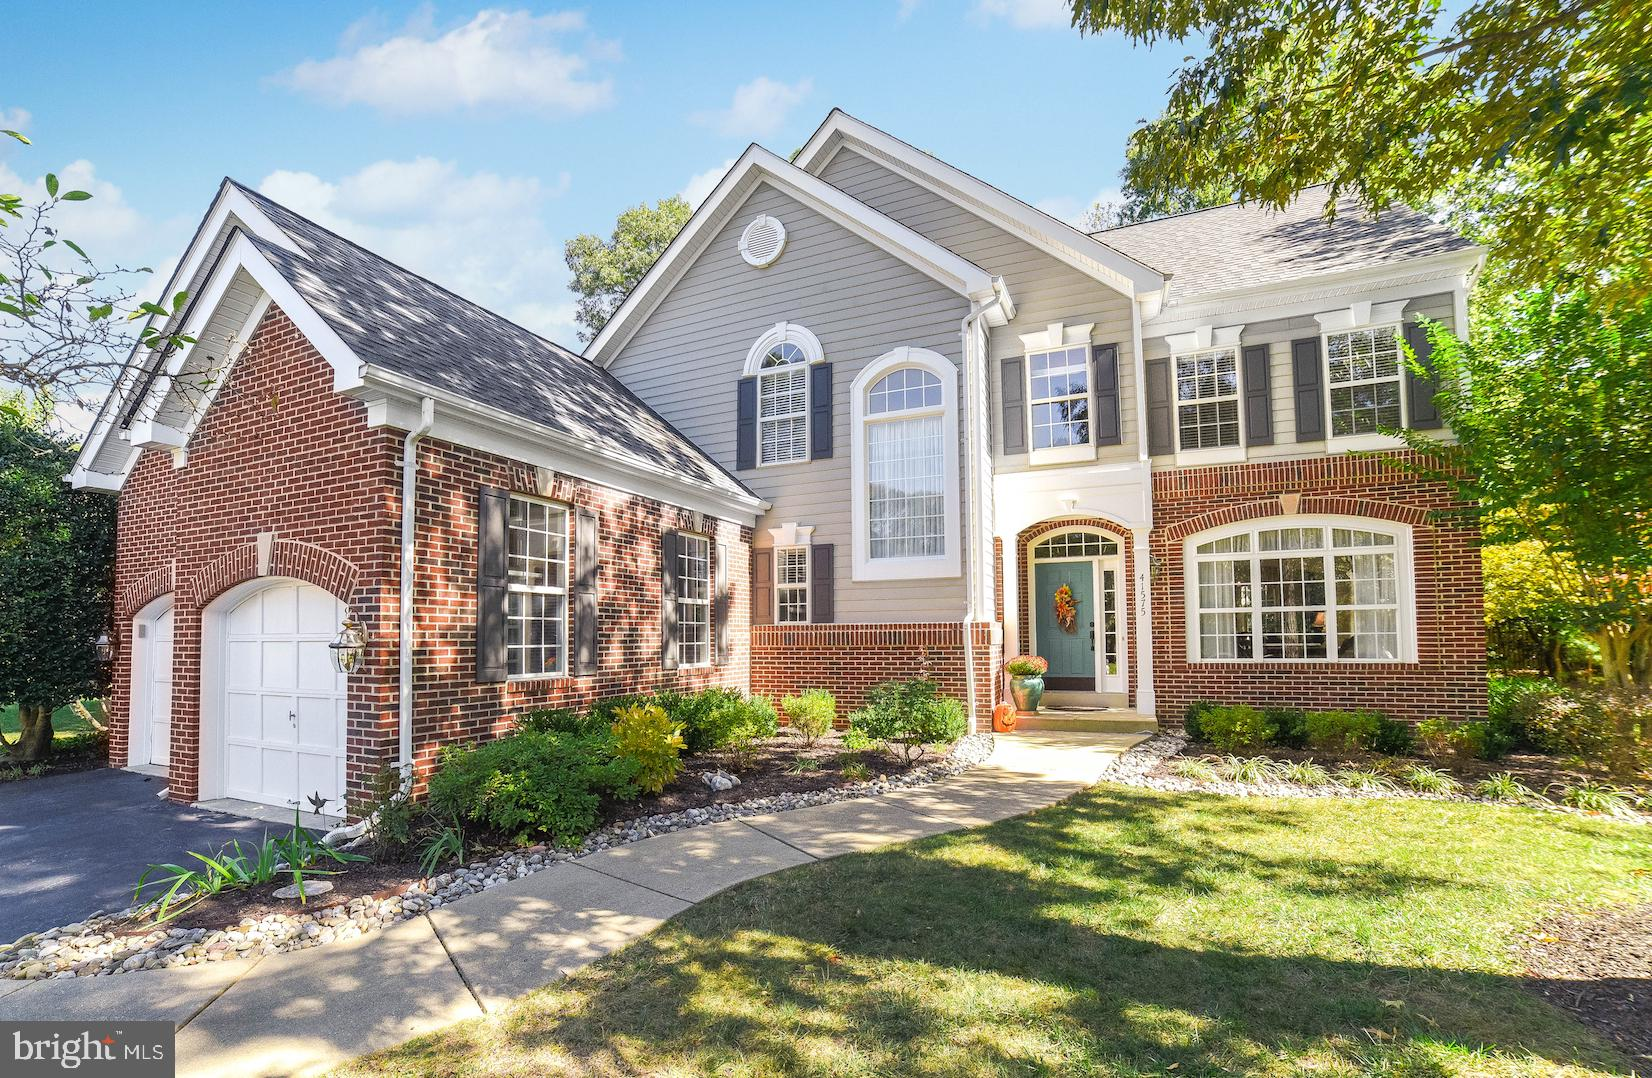 Get here first--this lovely home will impress and delight! Upgrades, updates and meticulous care are